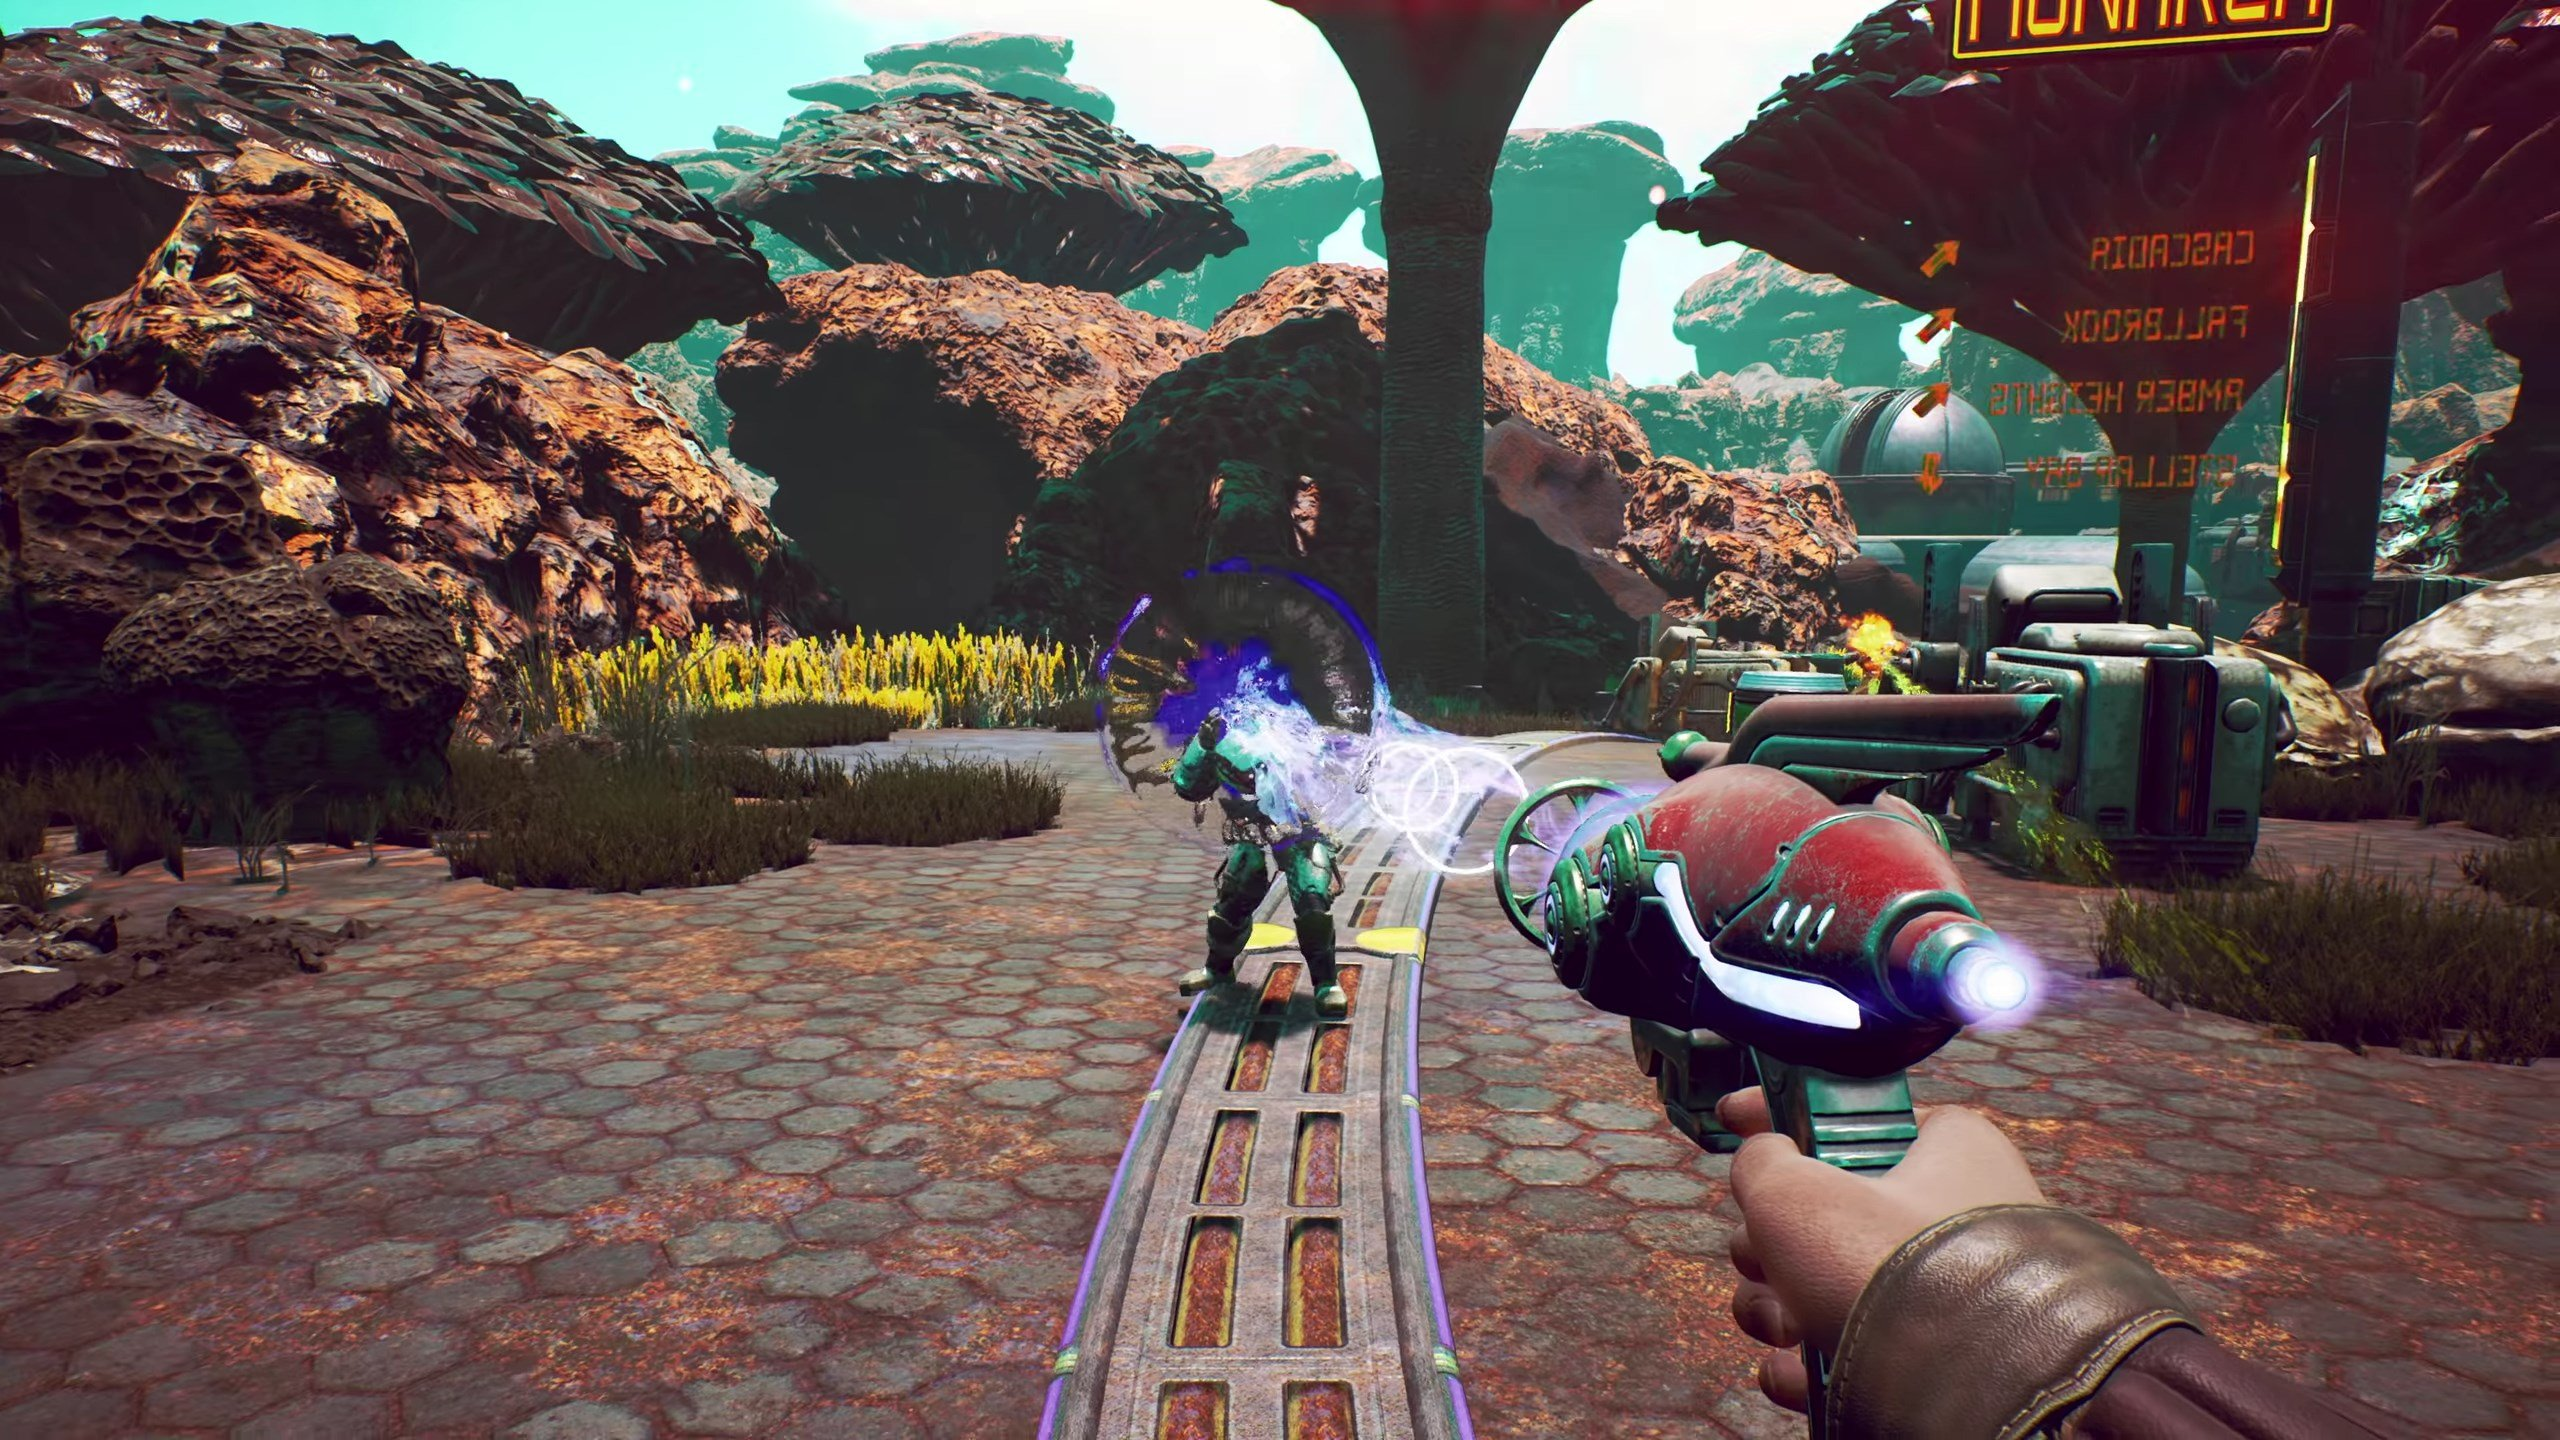 The Outer Worlds will have enhancements on the Xbox One X, but not the PS4 Pro screenshot